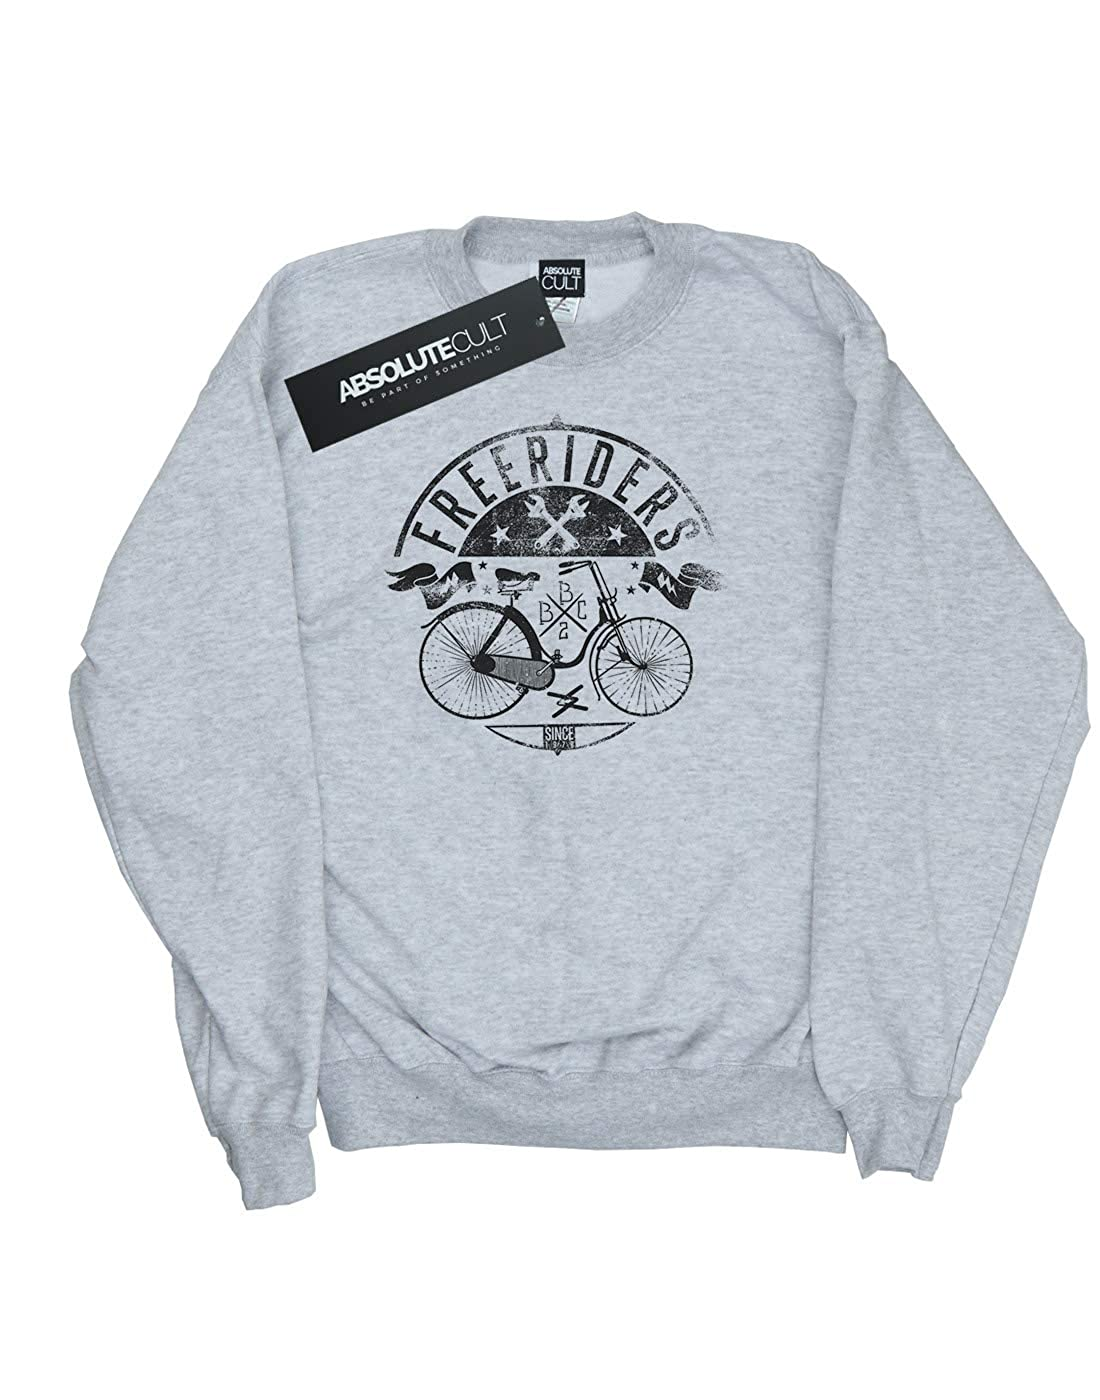 Absolute Cult Drewbacca Girls Freeriders Cycling Sweatshirt